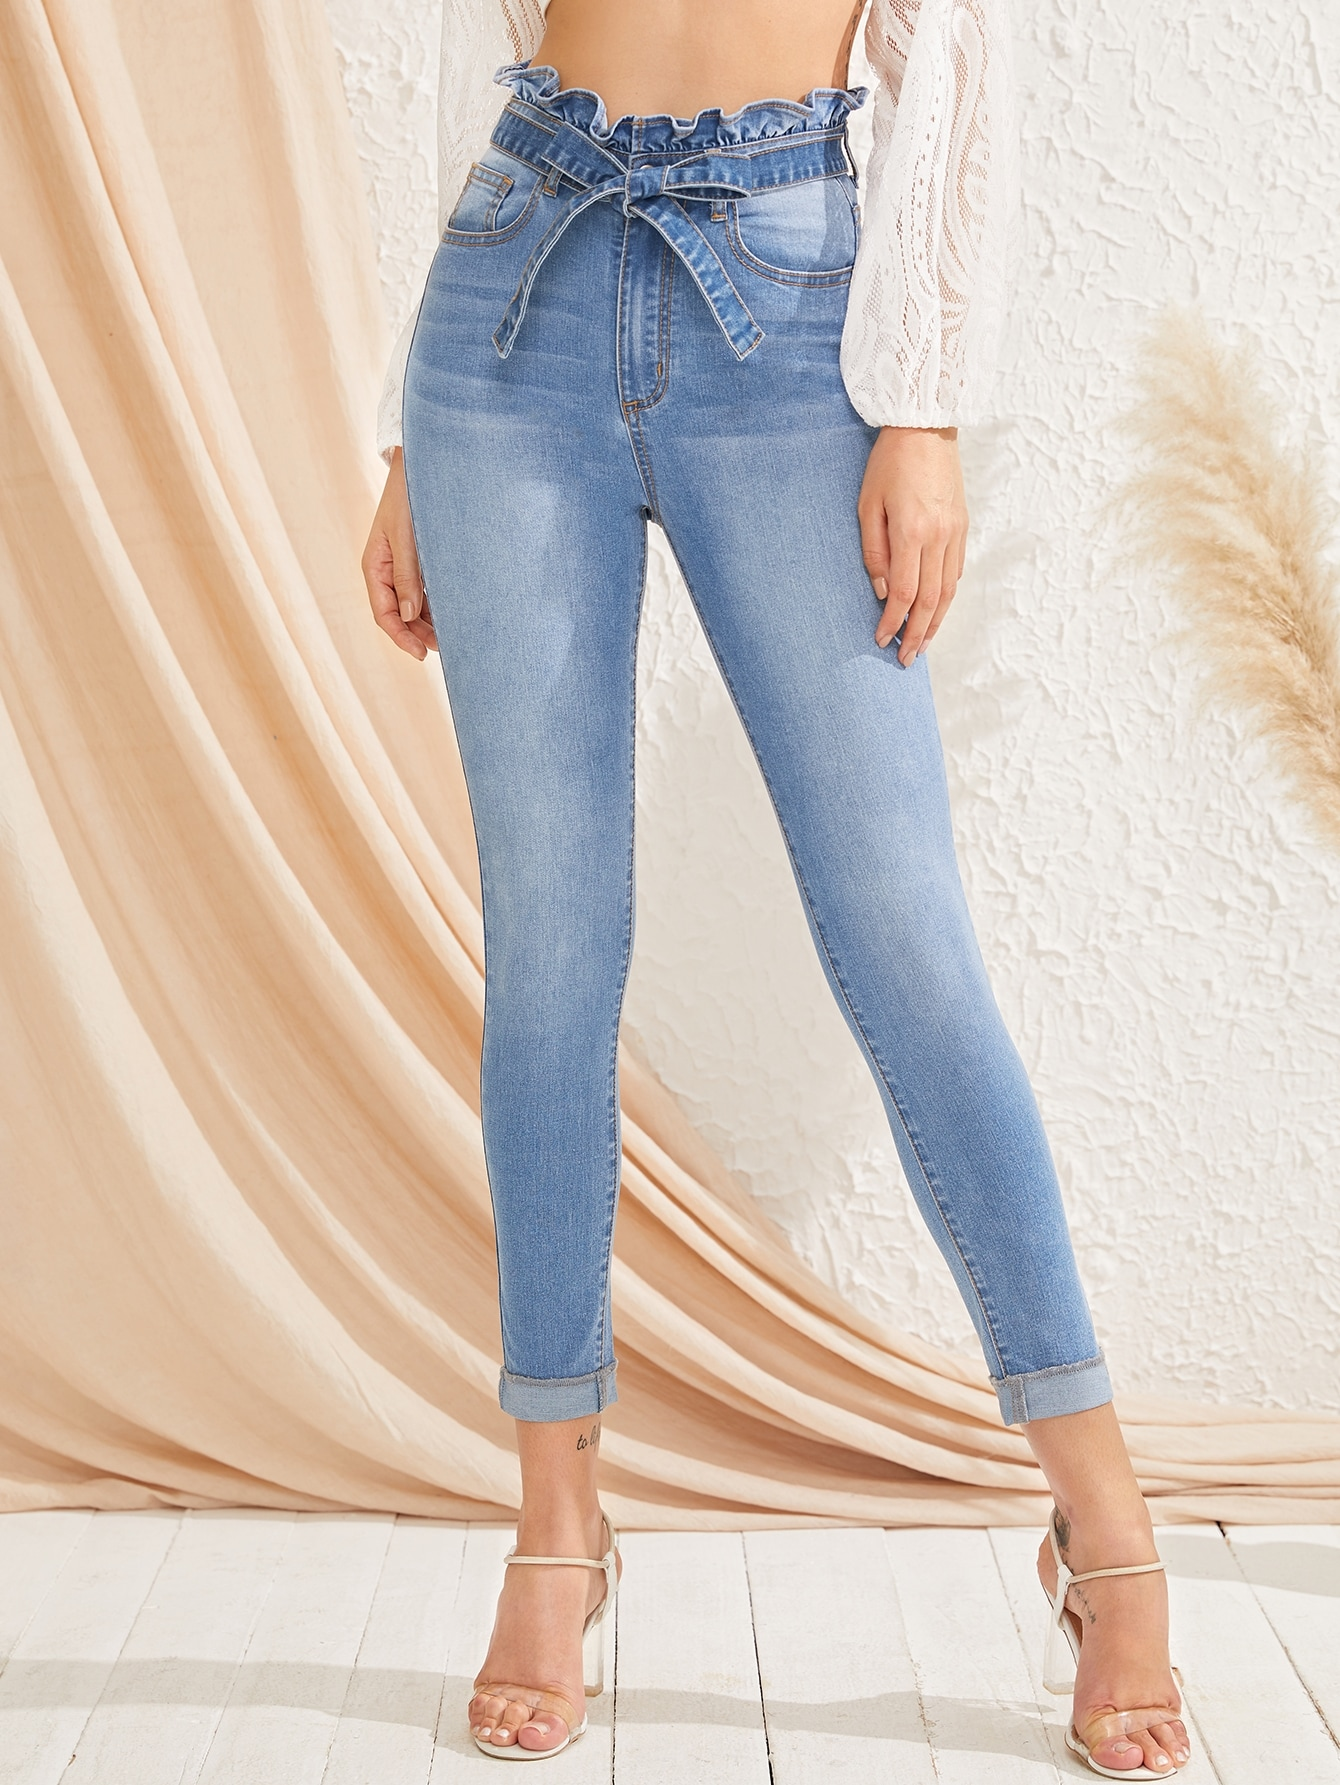 71c259a650 Paperbag Waist Bleach Wash Skinny Jeans